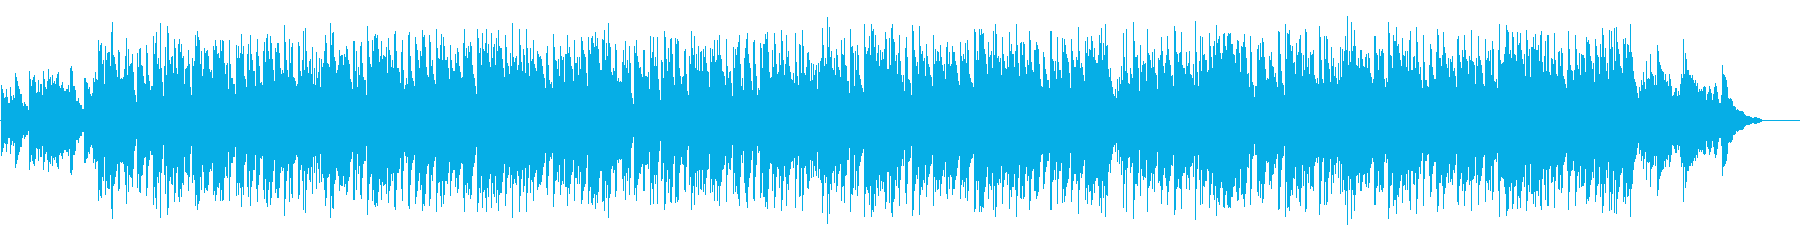 Crossfade screen of smiles and memories's reproduced waveform